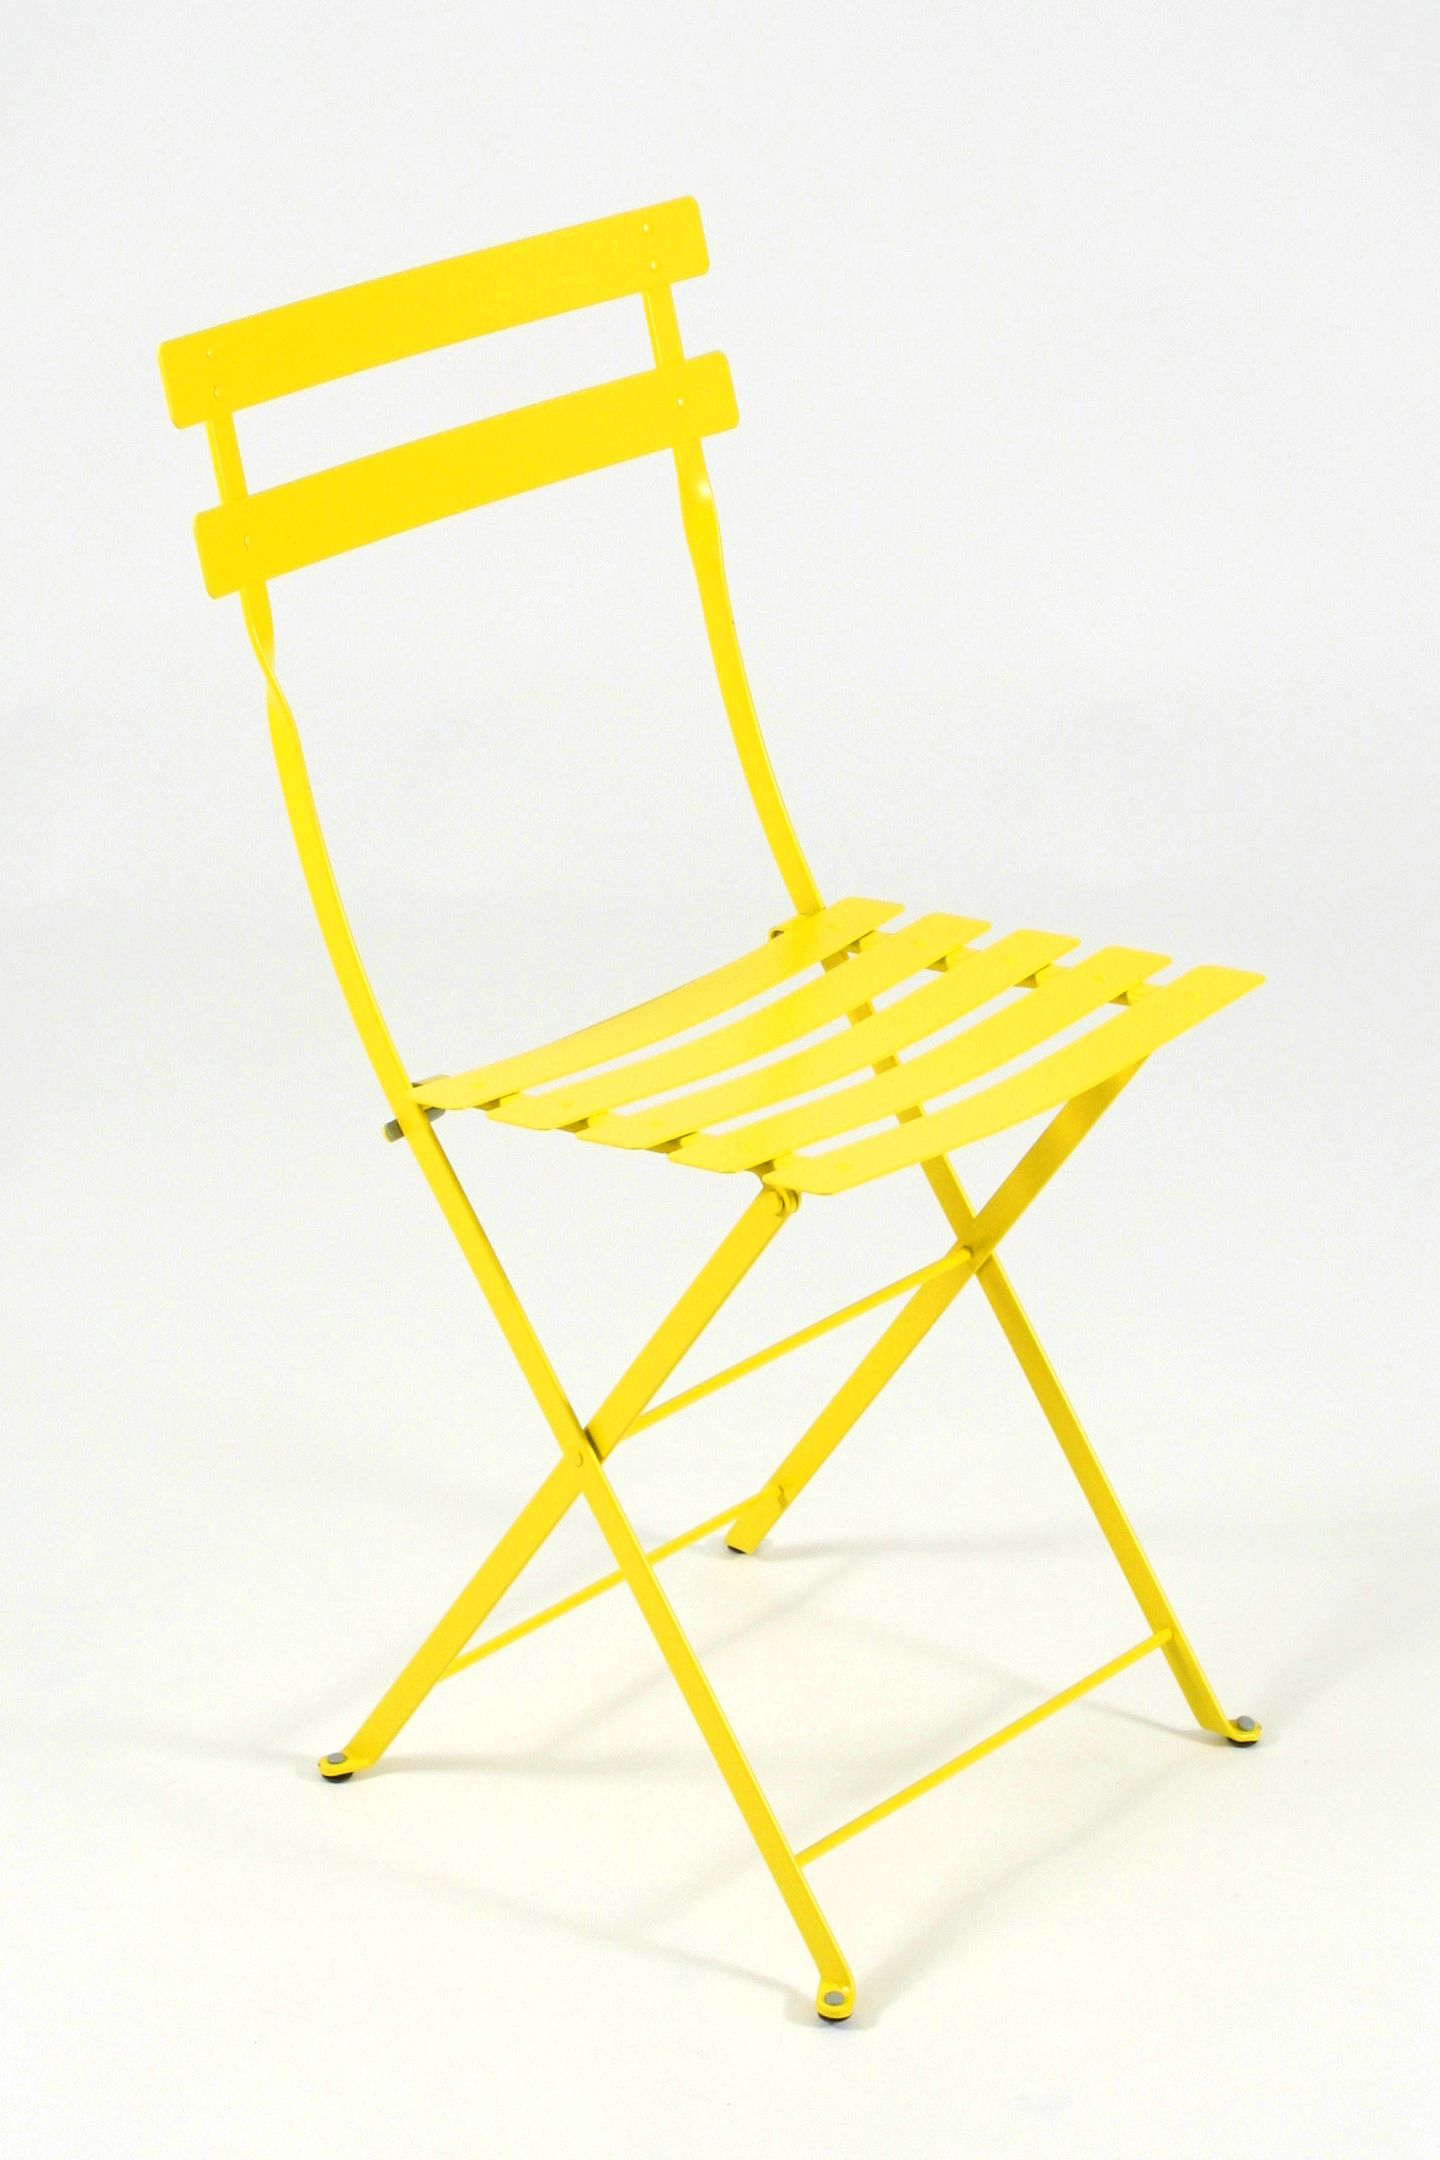 Yellow Color Typical French Bistro Chair From Fermob Find It At Platane Outdoor Patio Furniture Sets Patio Furnishings Iron Patio Furniture